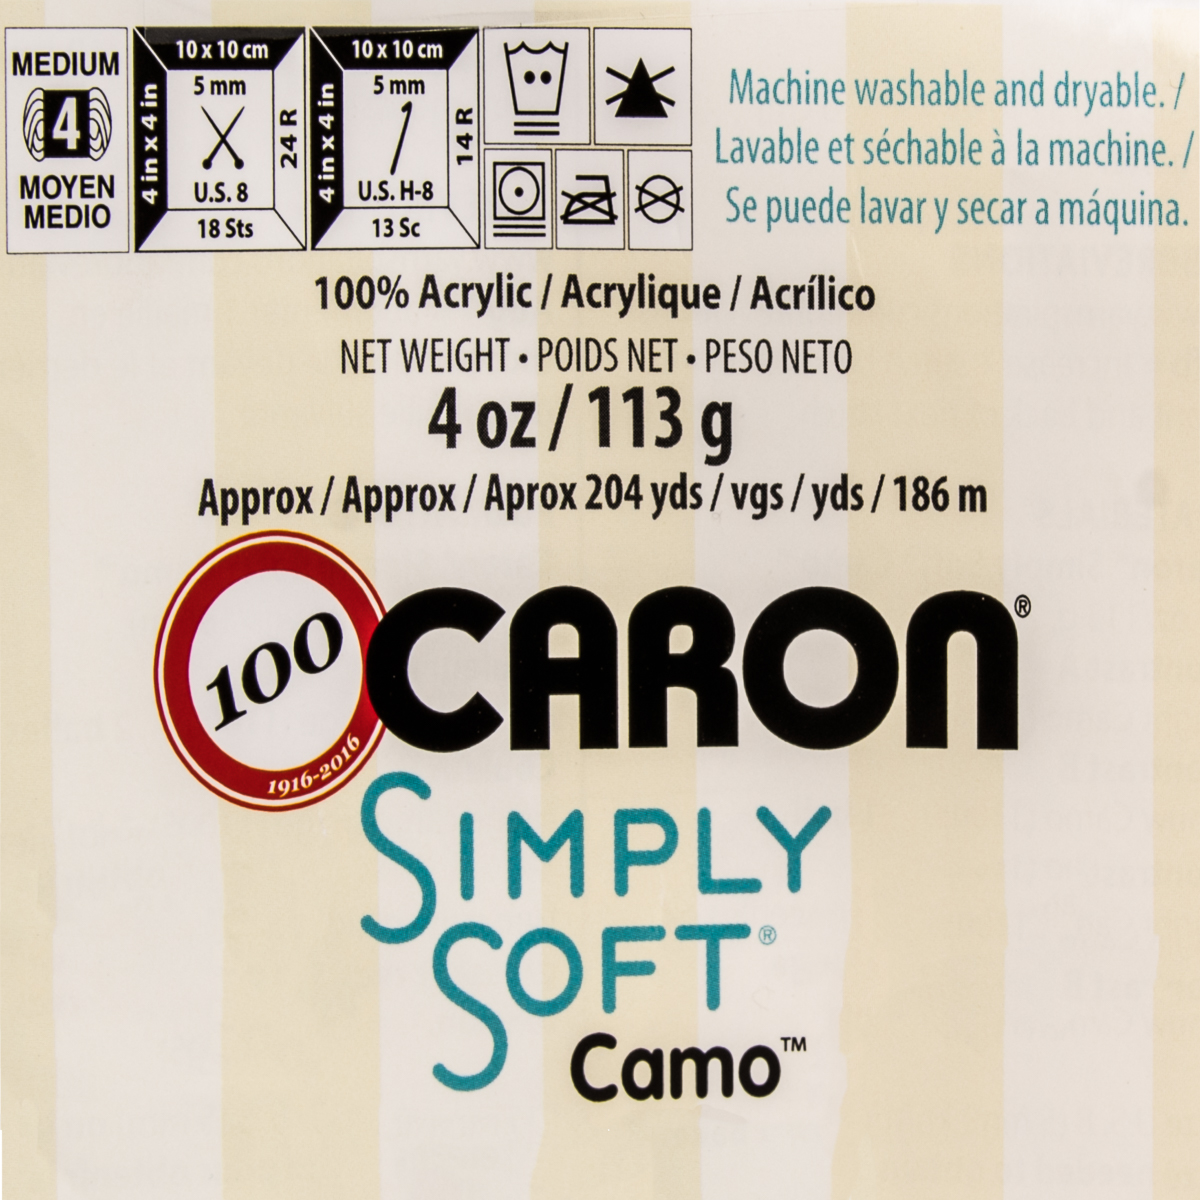 3pk-Caron-Simply-Soft-Camo-100-Acrylic-Yarn-Medium-4-Knit-Crochet-Skeins-Soft thumbnail 14